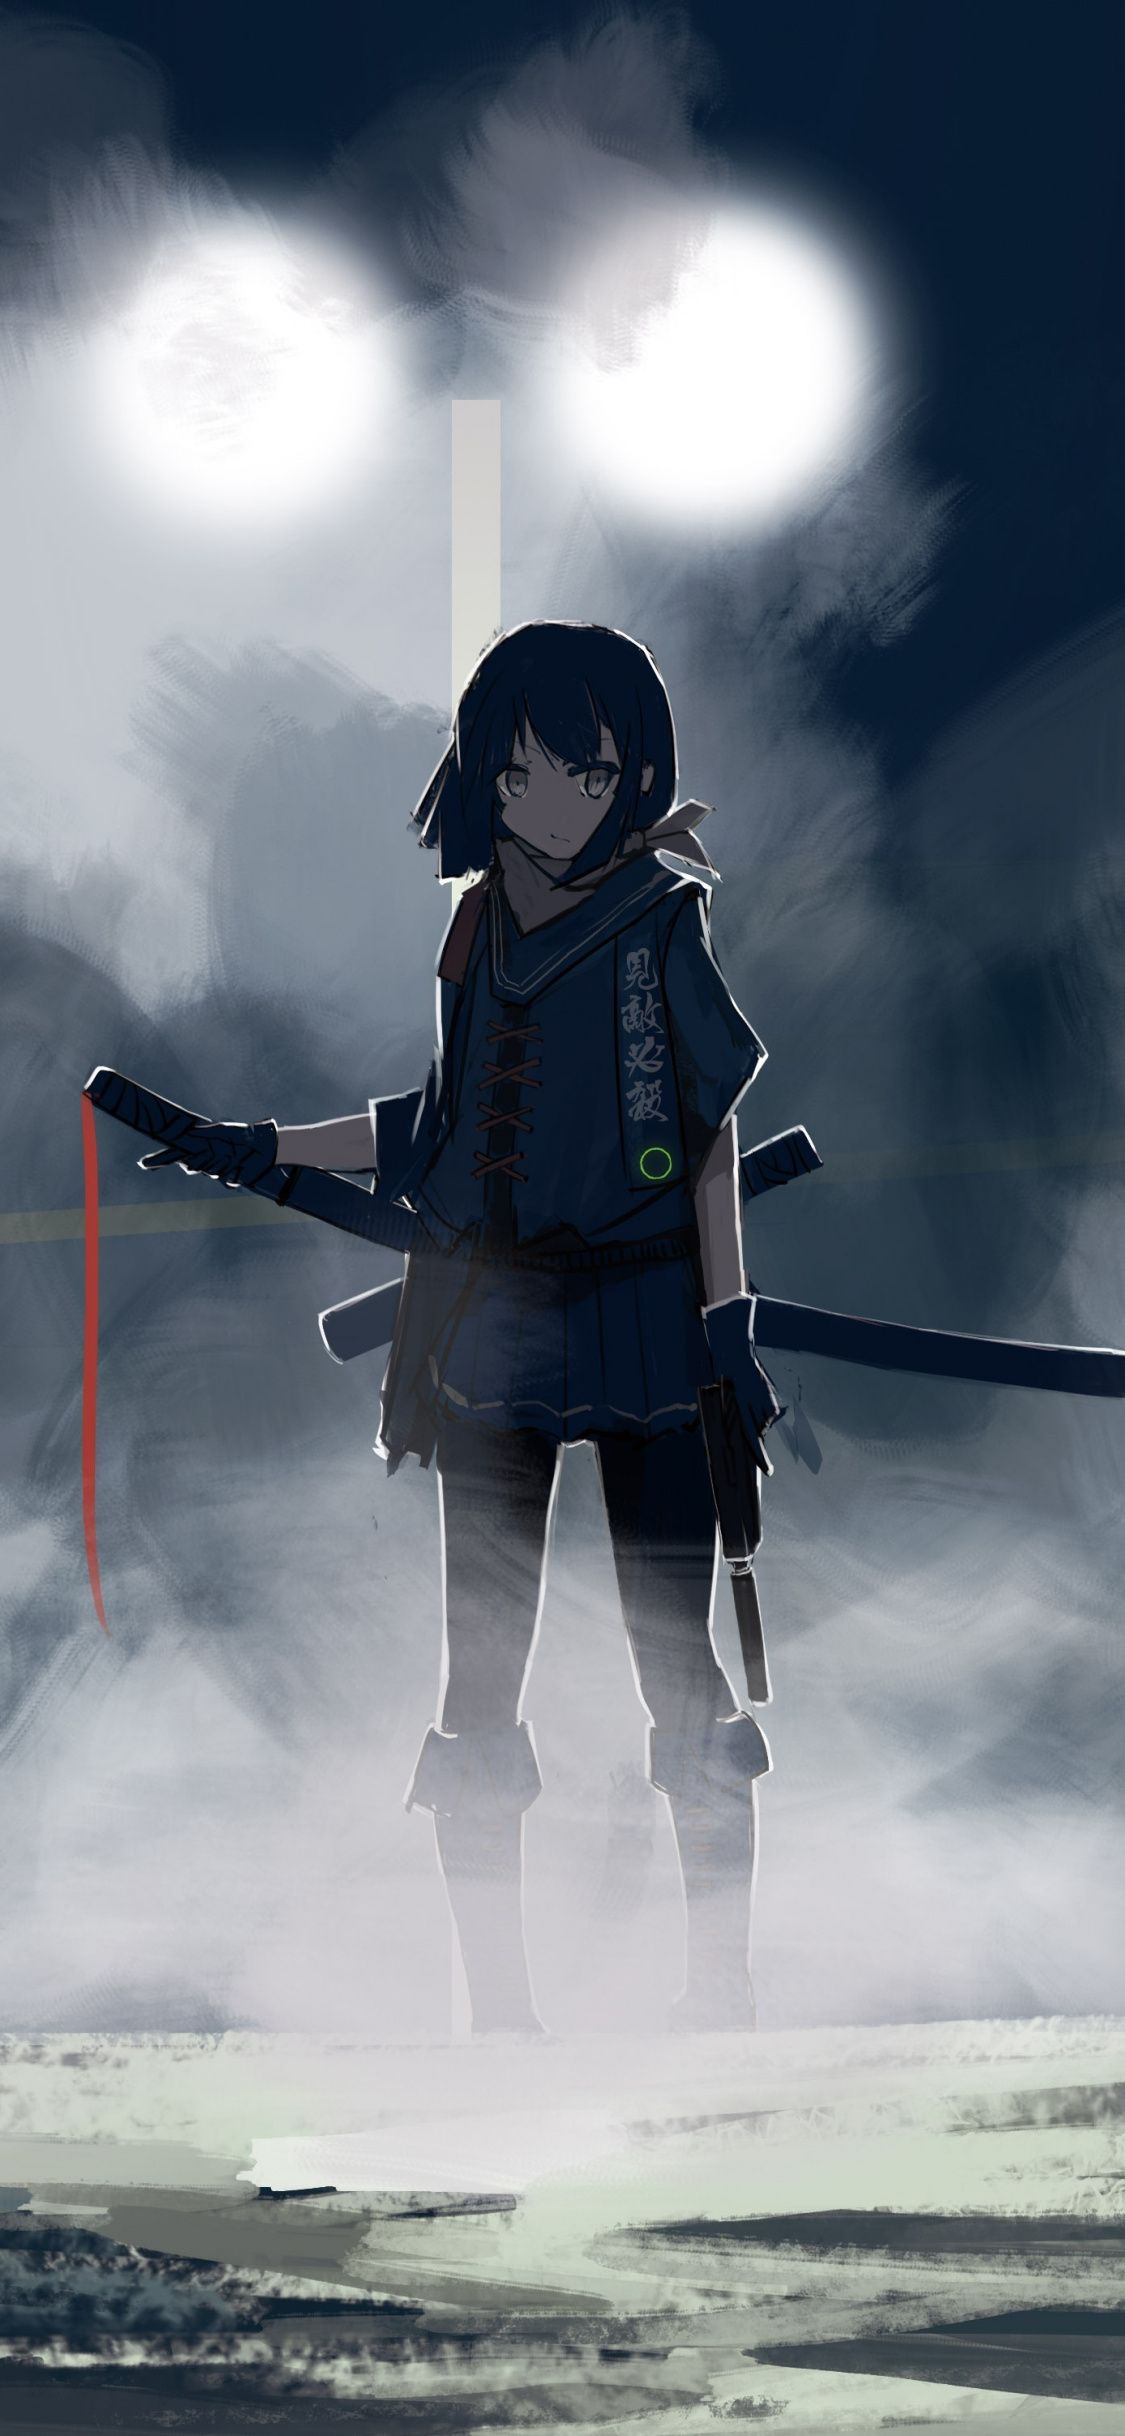 Pin on Anime Wallpapers